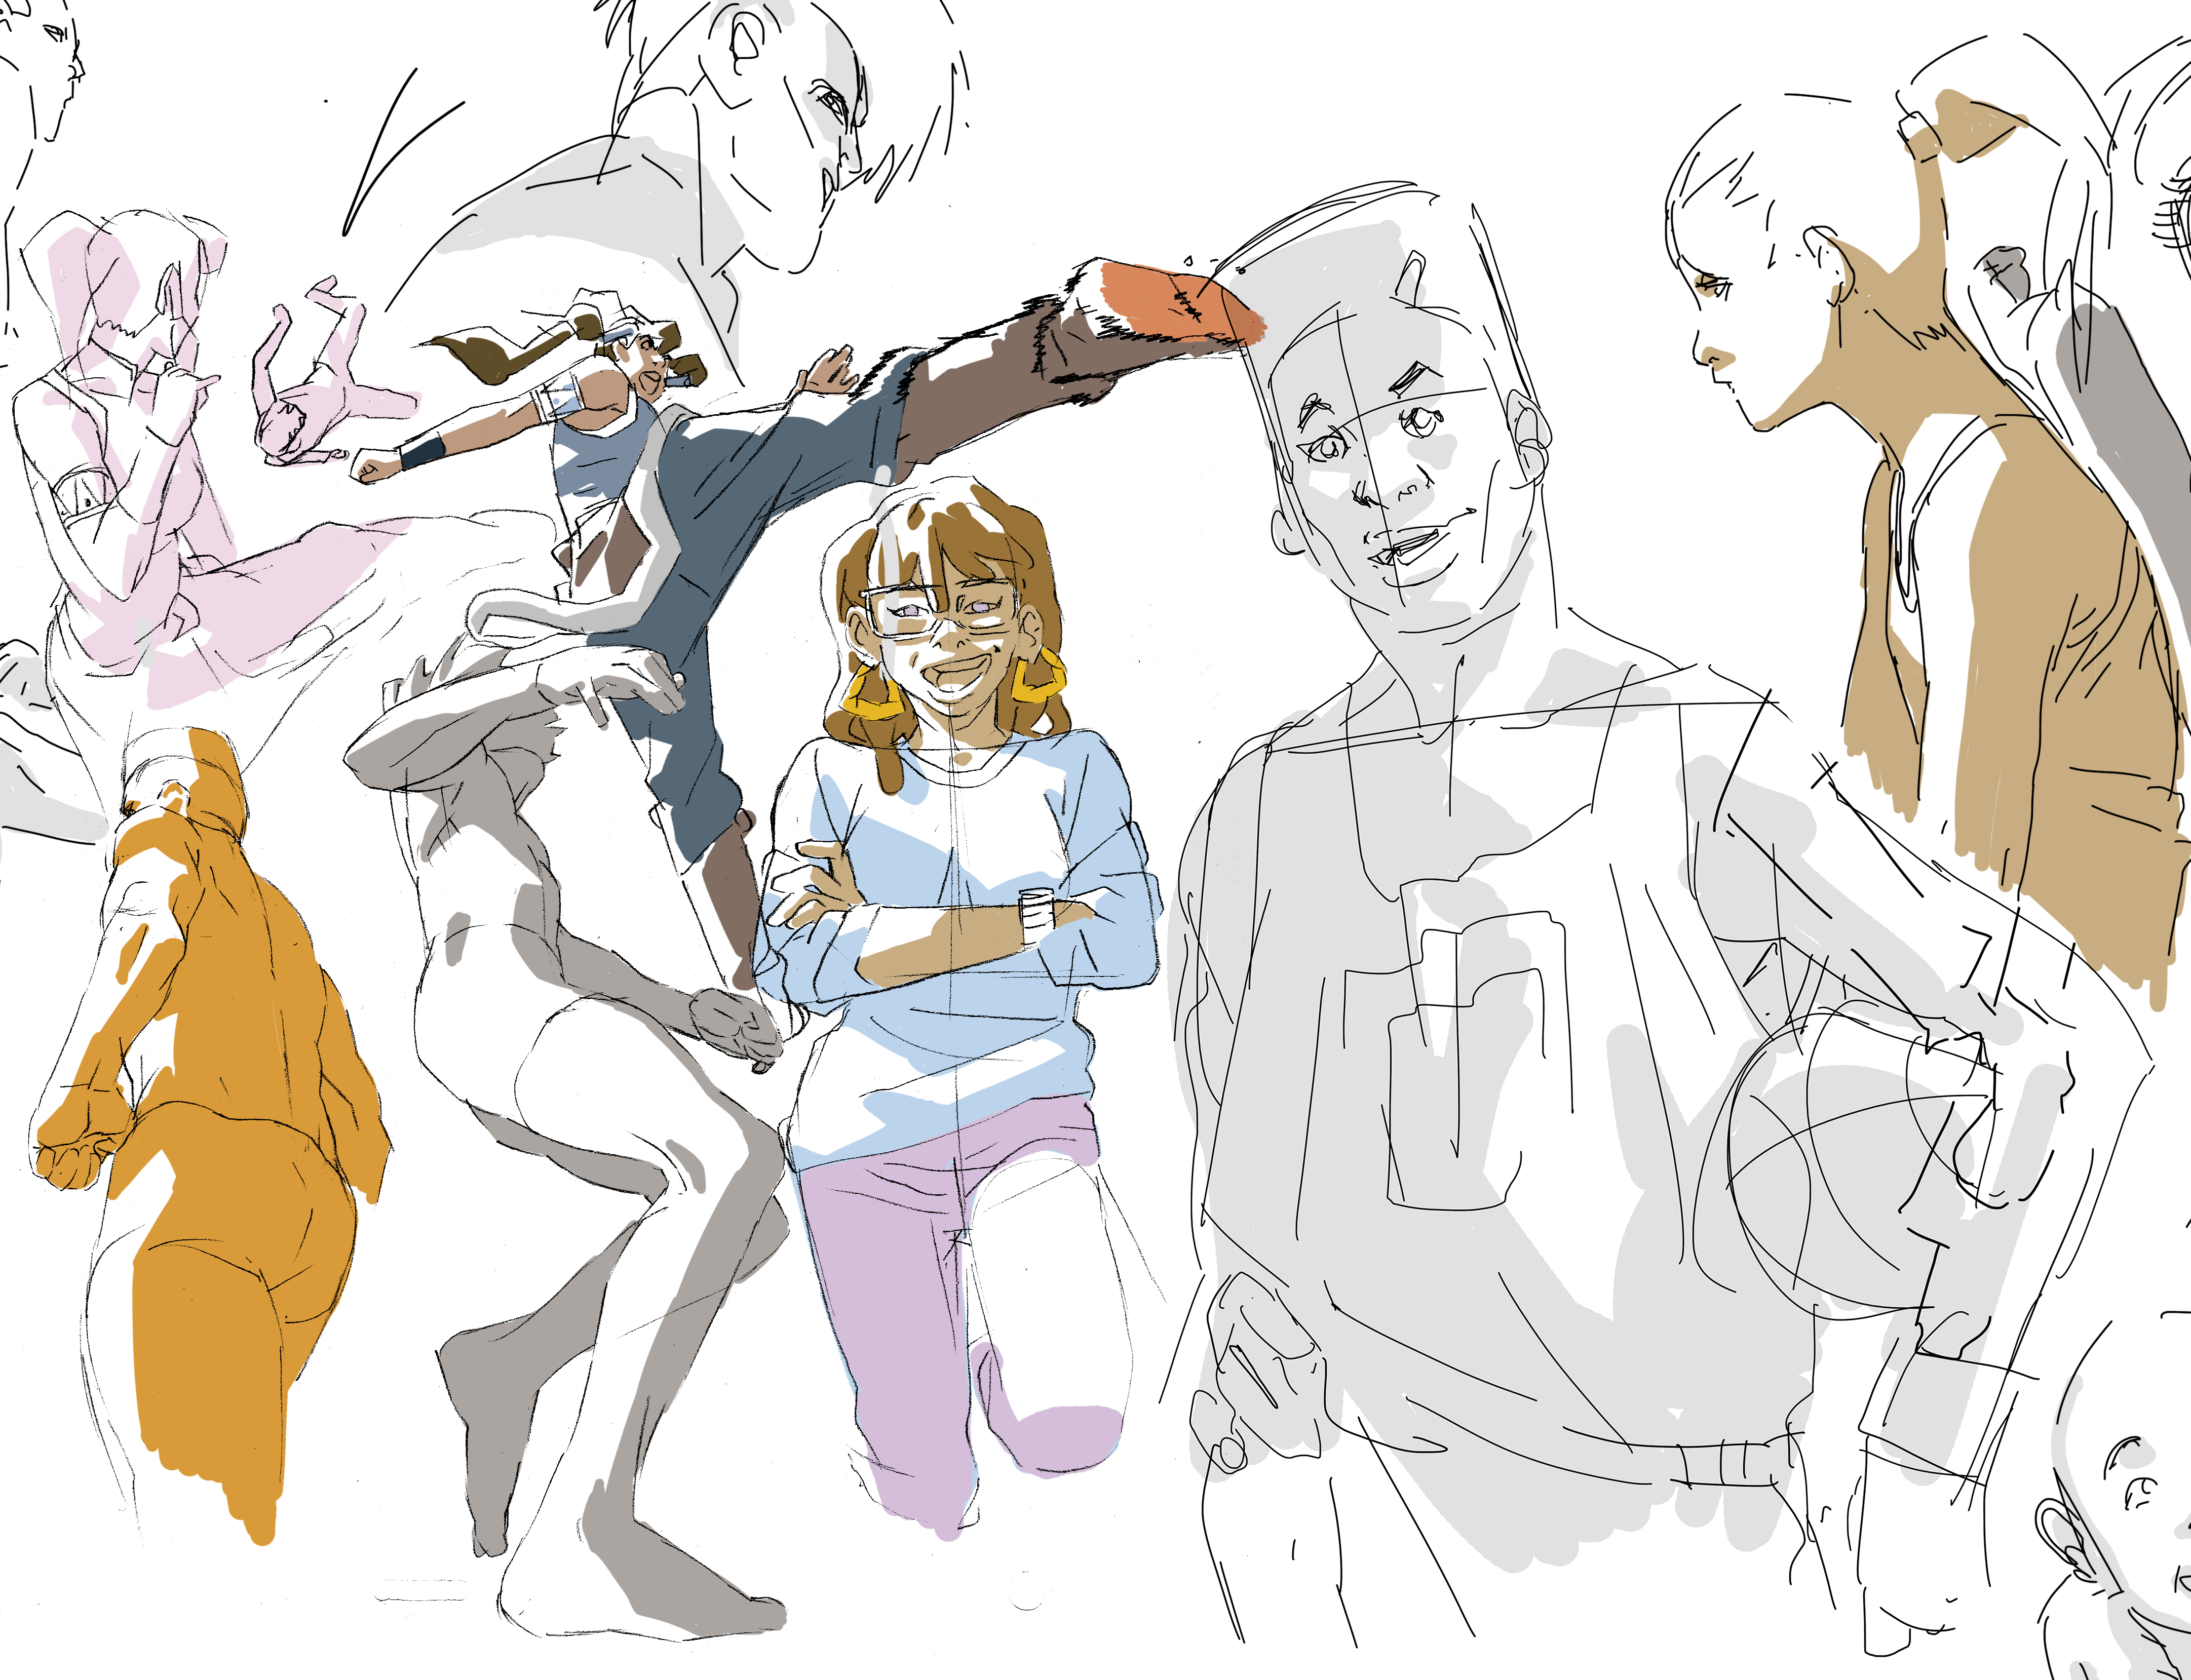 Some more warm-ups